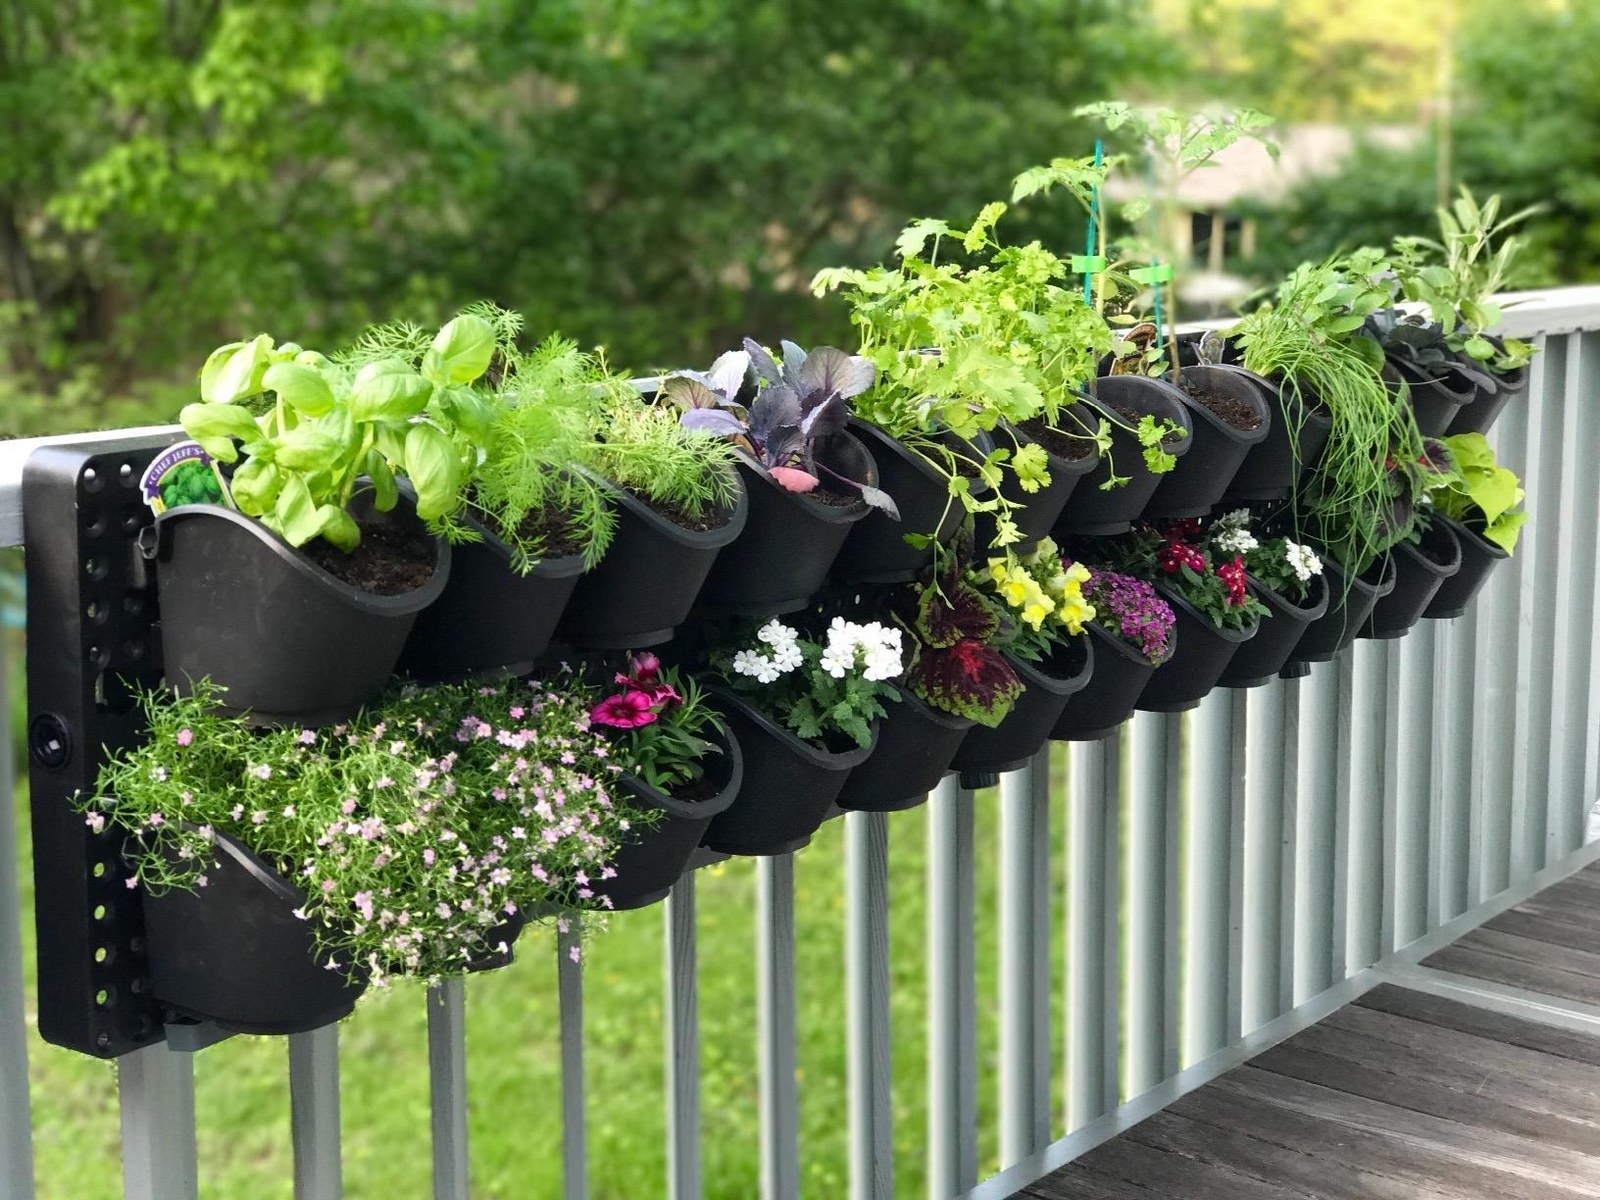 A reviewer photo of a row of planters attached to railing on a deck